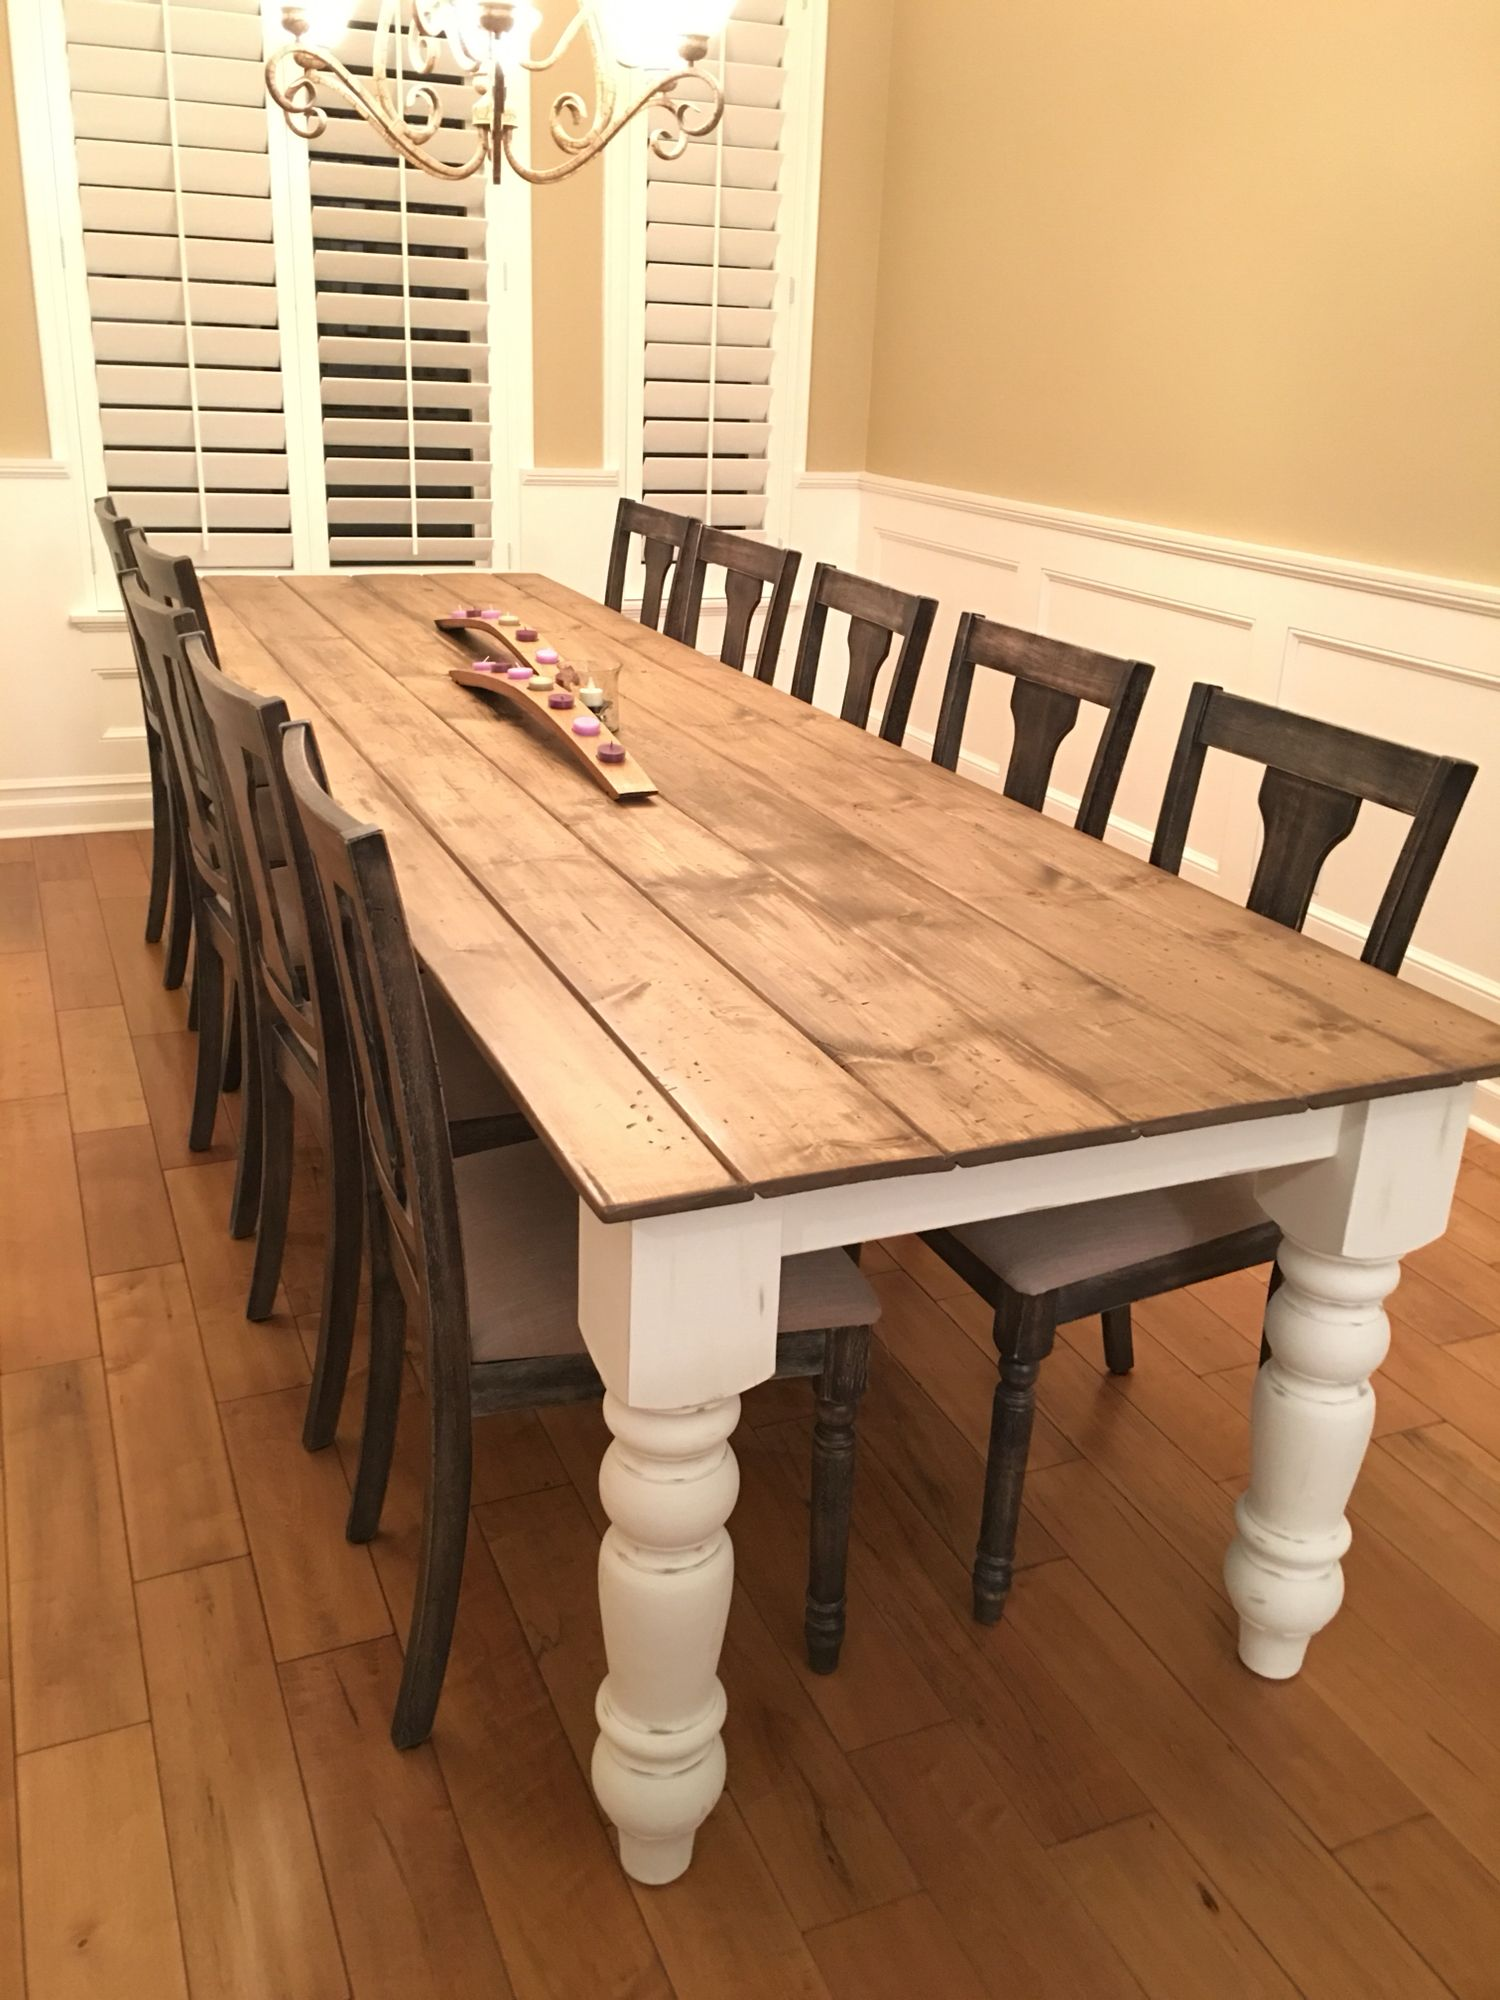 My Husband Made 10 Foot 8 Inch Farmhouse Table Top With Shiplap I Painted And Distressed It Legs Apron Ordered From Osborne Wood Products